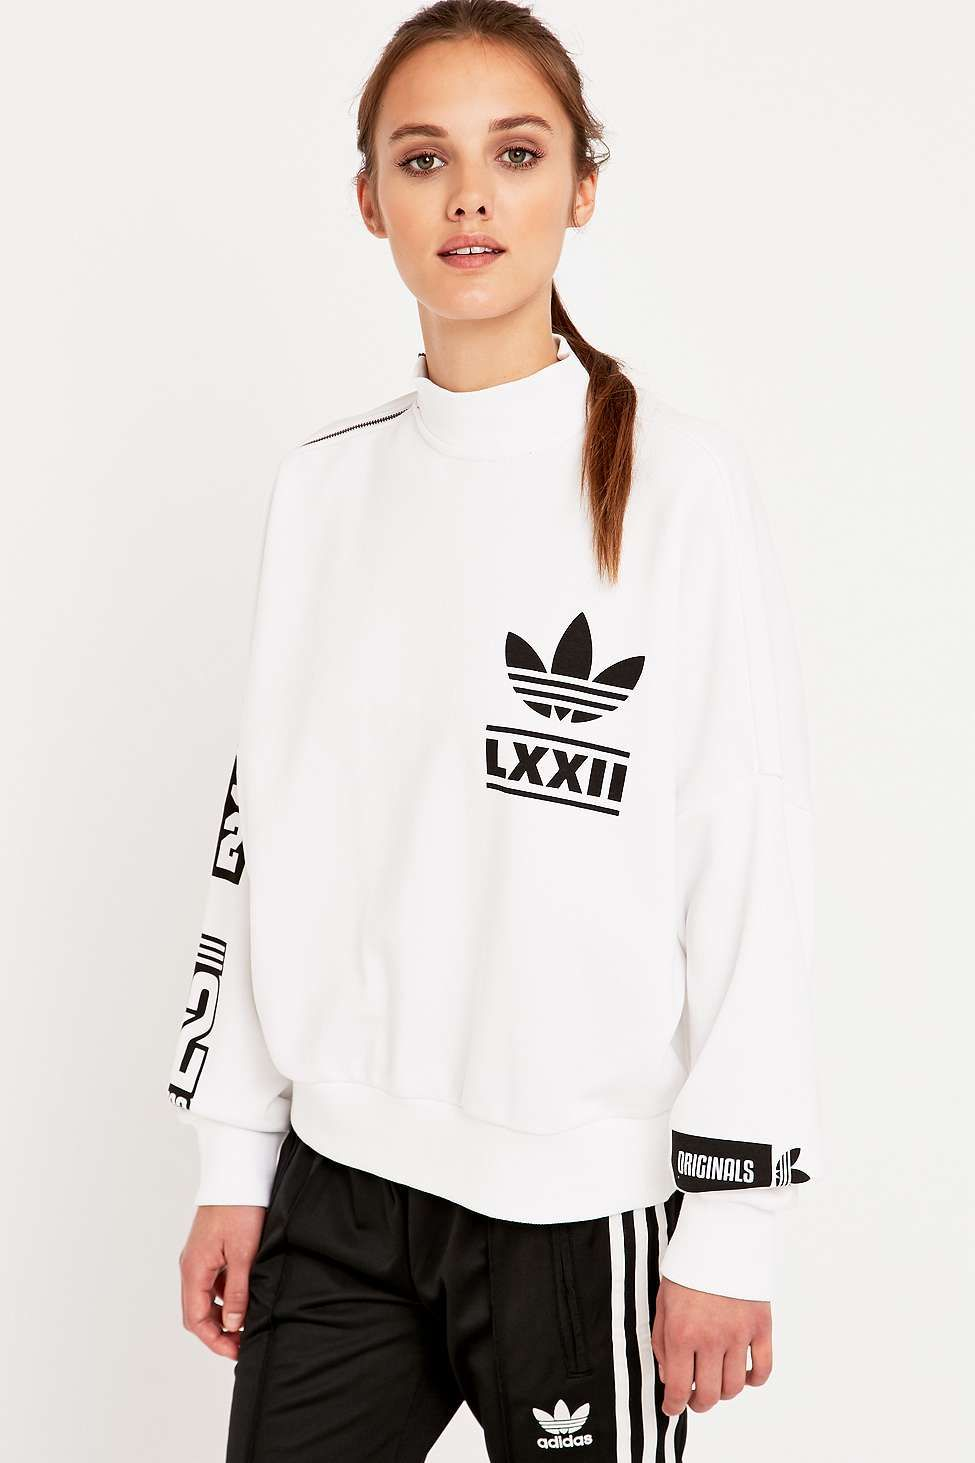 adidas Berlin White Logo Sweatshirt   Fashion   Adidas, Sweatshirts ... 2146824649ce